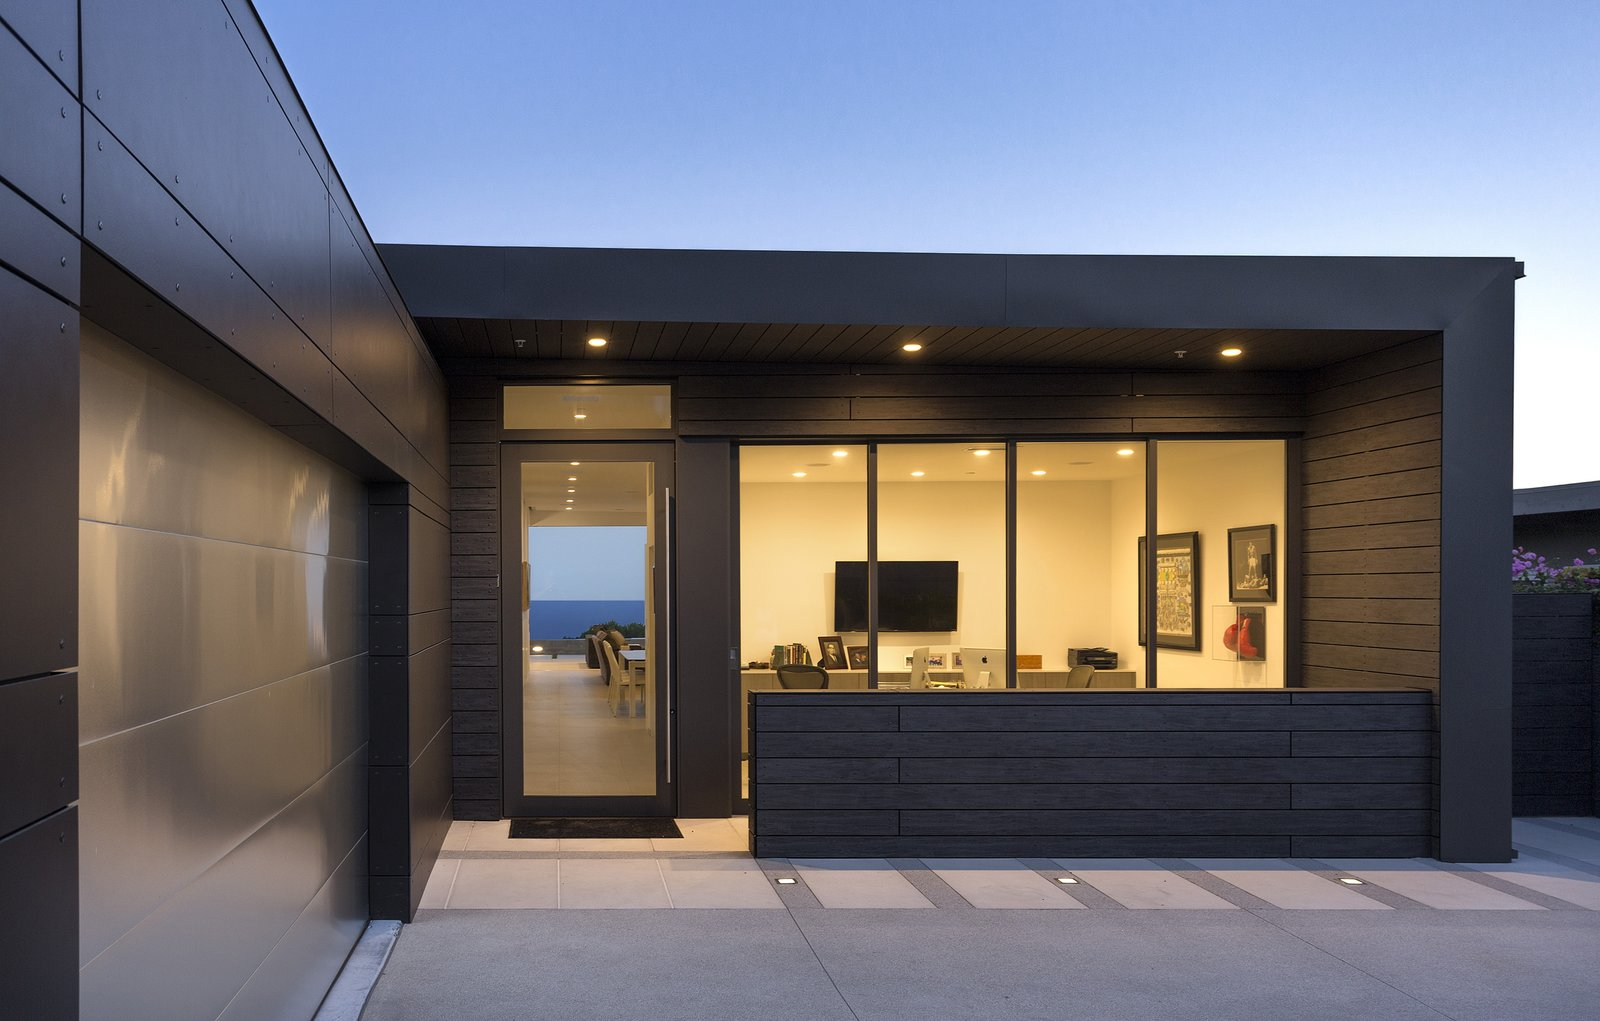 From the front entrance to the back patio, the structure acts as a portal that establishes views of the striking scenery from every room.    Glenhaven Residence by Abramson Teiger Architects